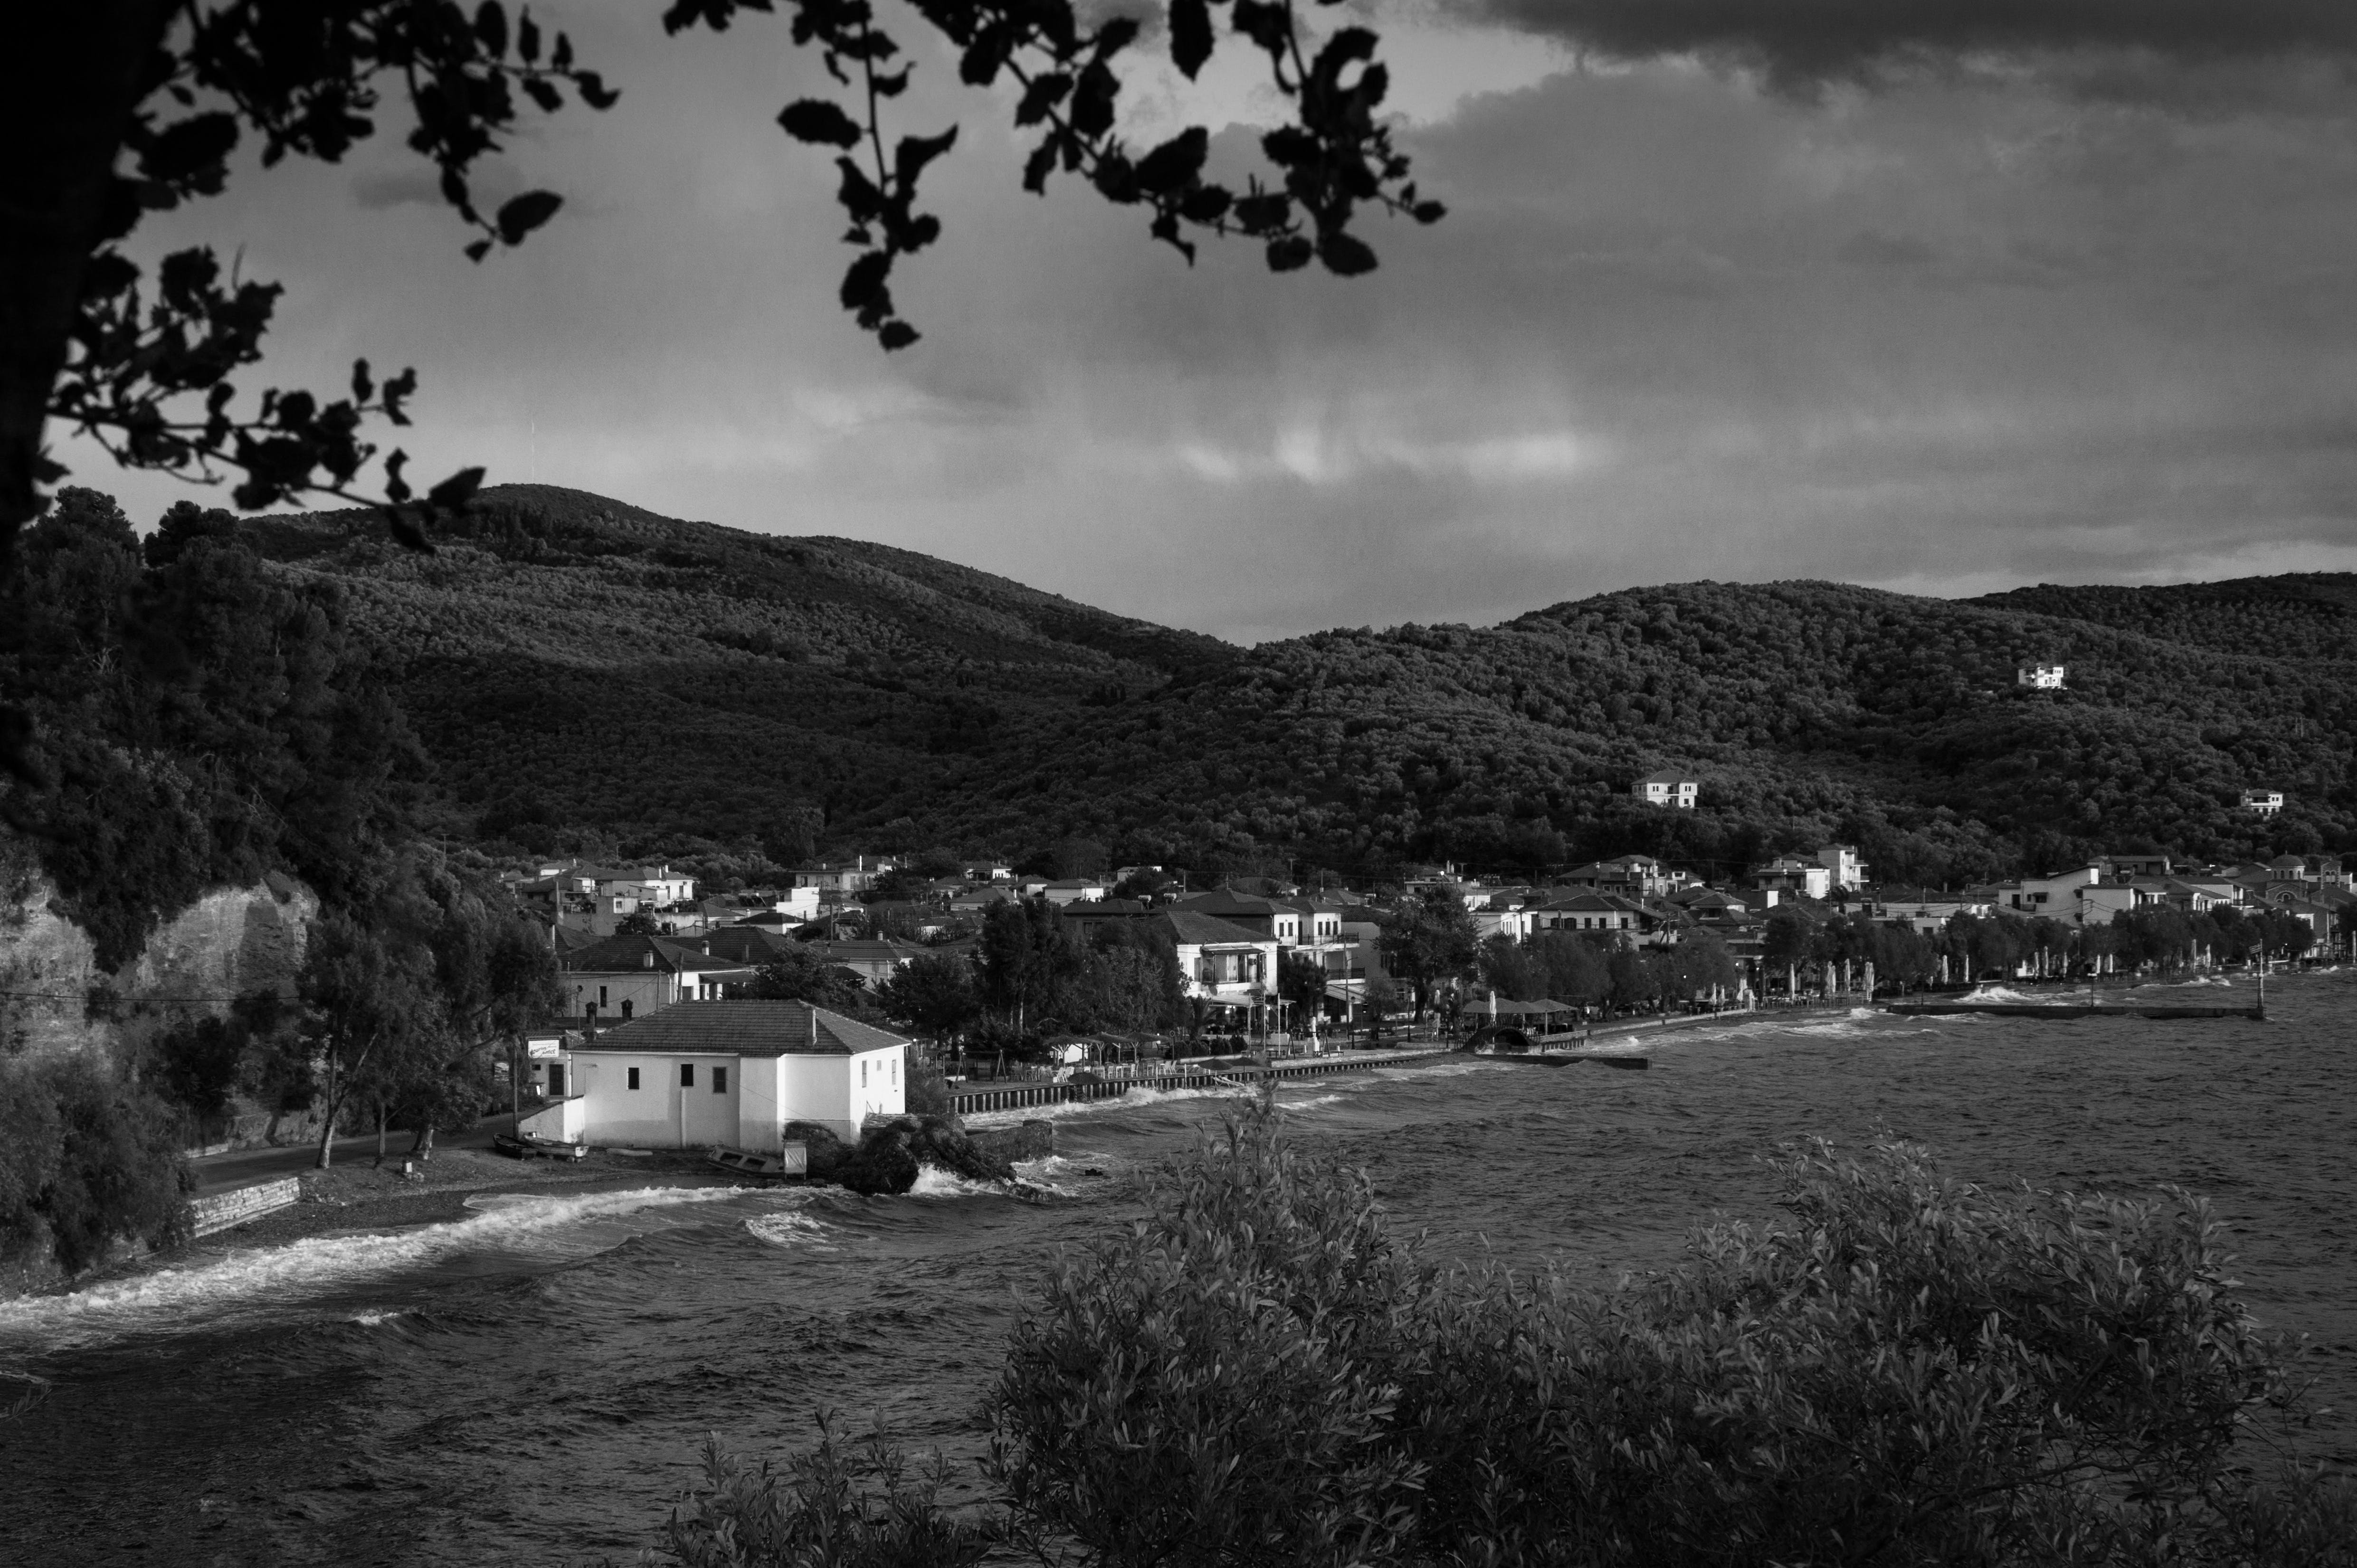 Grayscale Photo of Riverside Town Near Hills